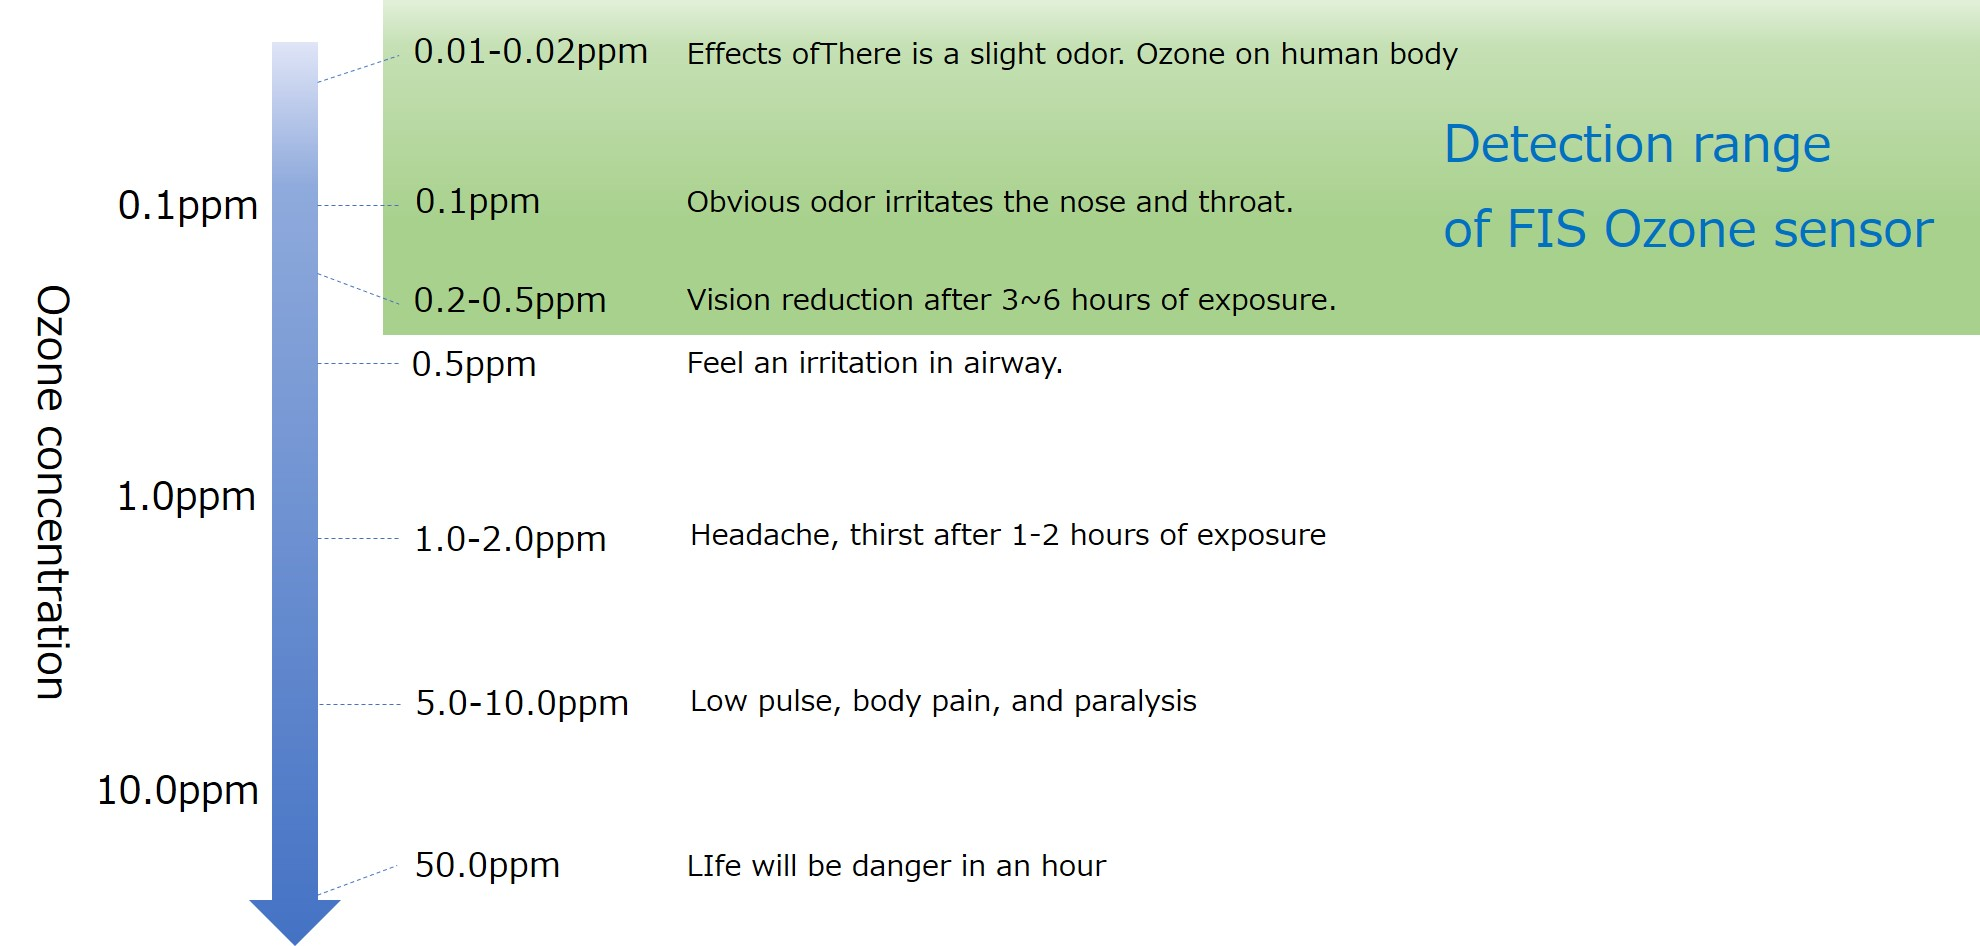 effects of Ozone on human body